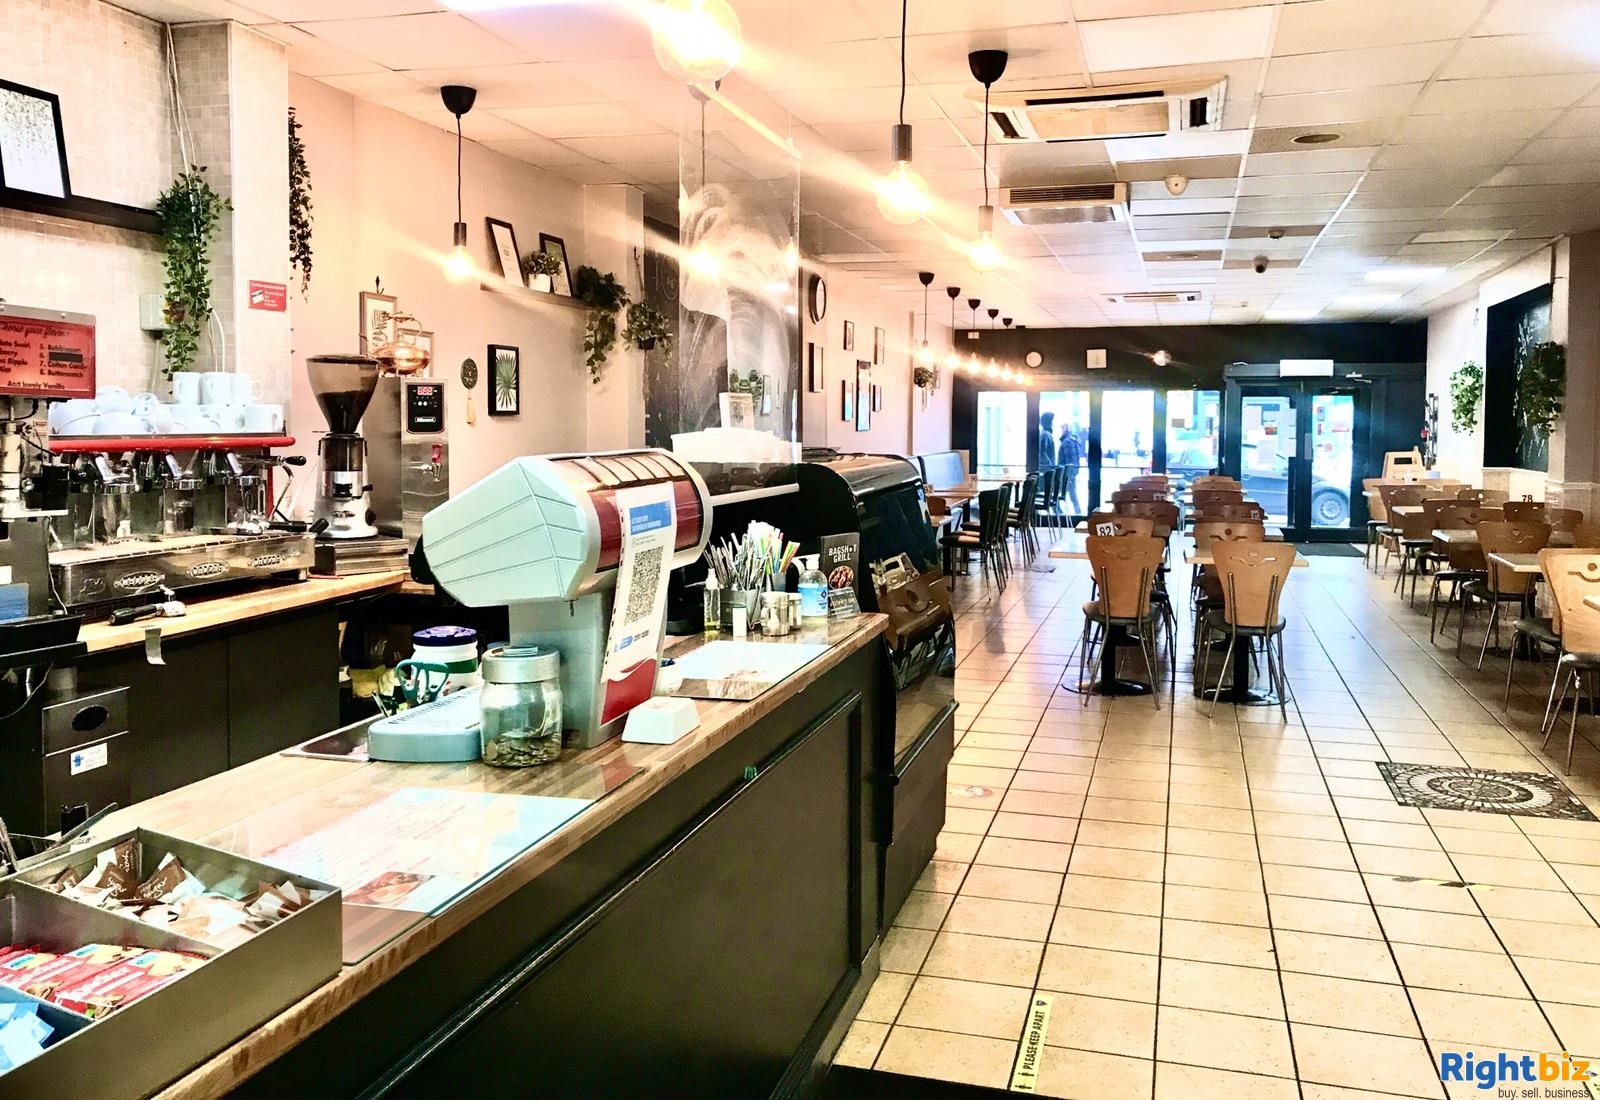 Busy Cafe/Restaurant for sale (120 seats), located on high street, with a large 2 bedroom flat - Image 2